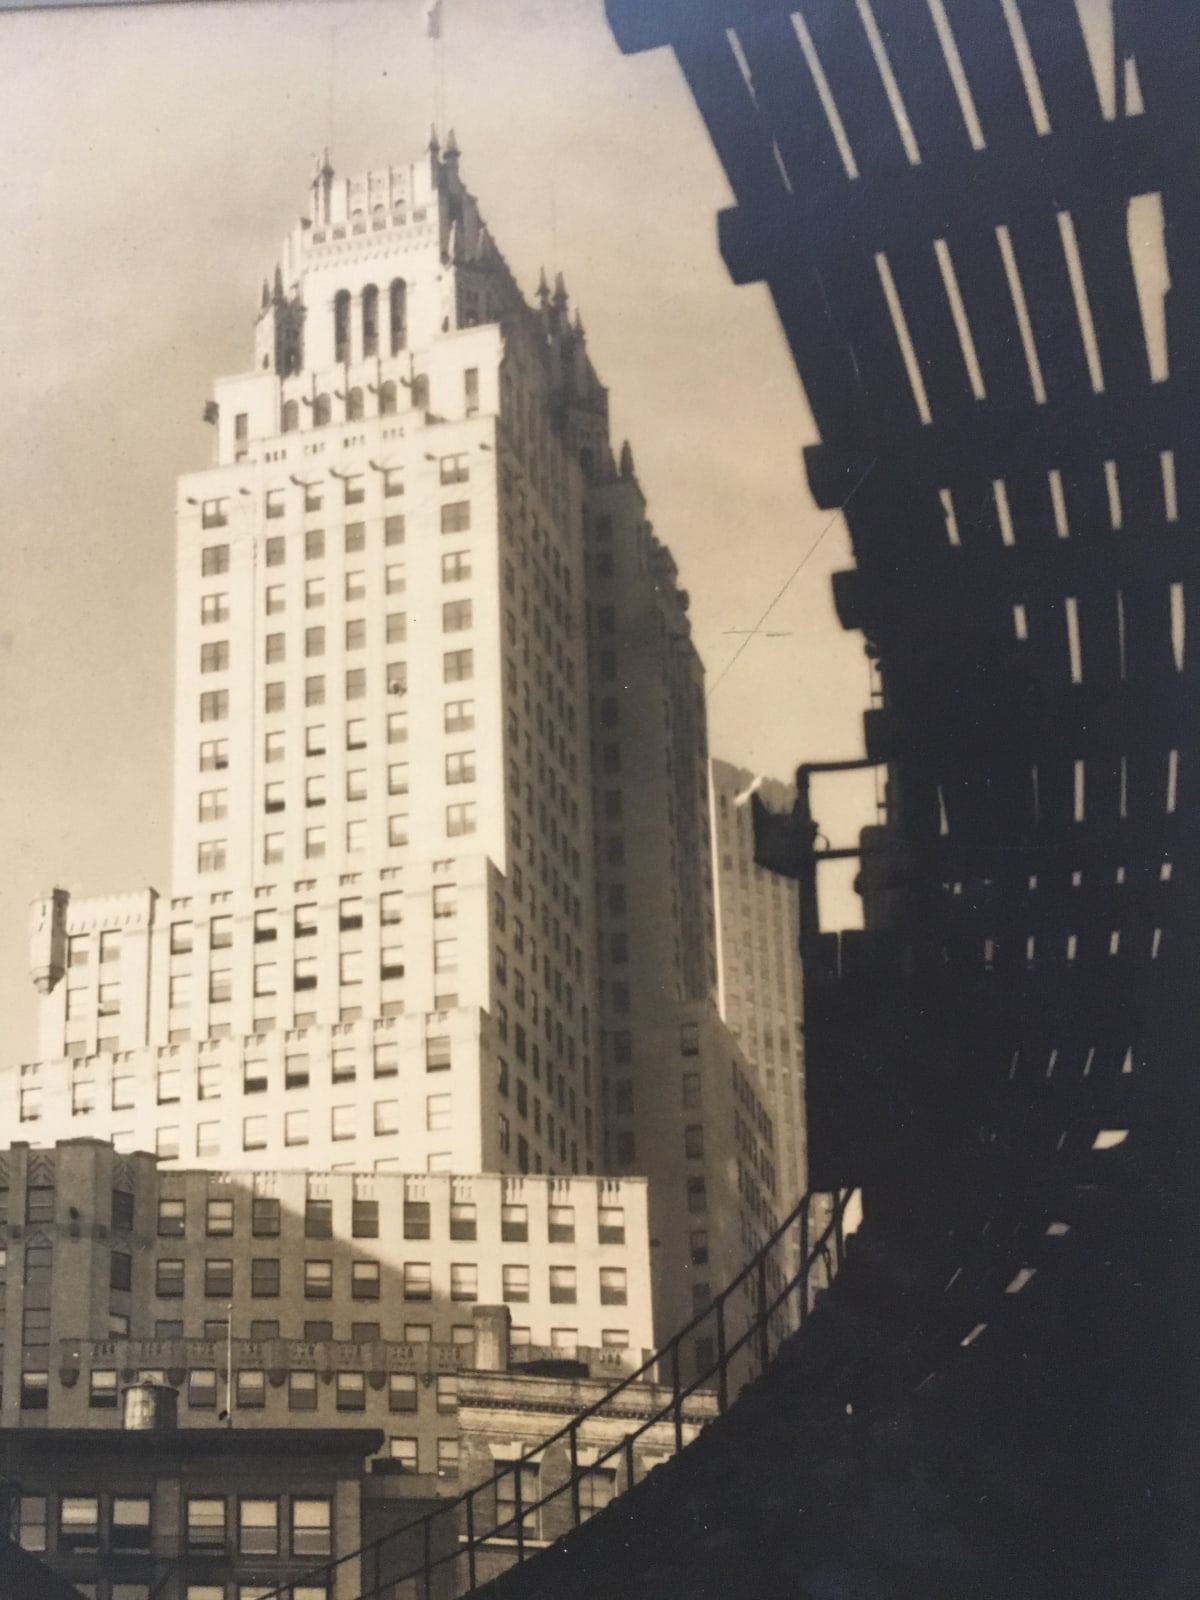 Fred Zinnemann City View with Elevated El, 1932 Vintage gelatin silver print 9 1/2 x 6 3/4 inches